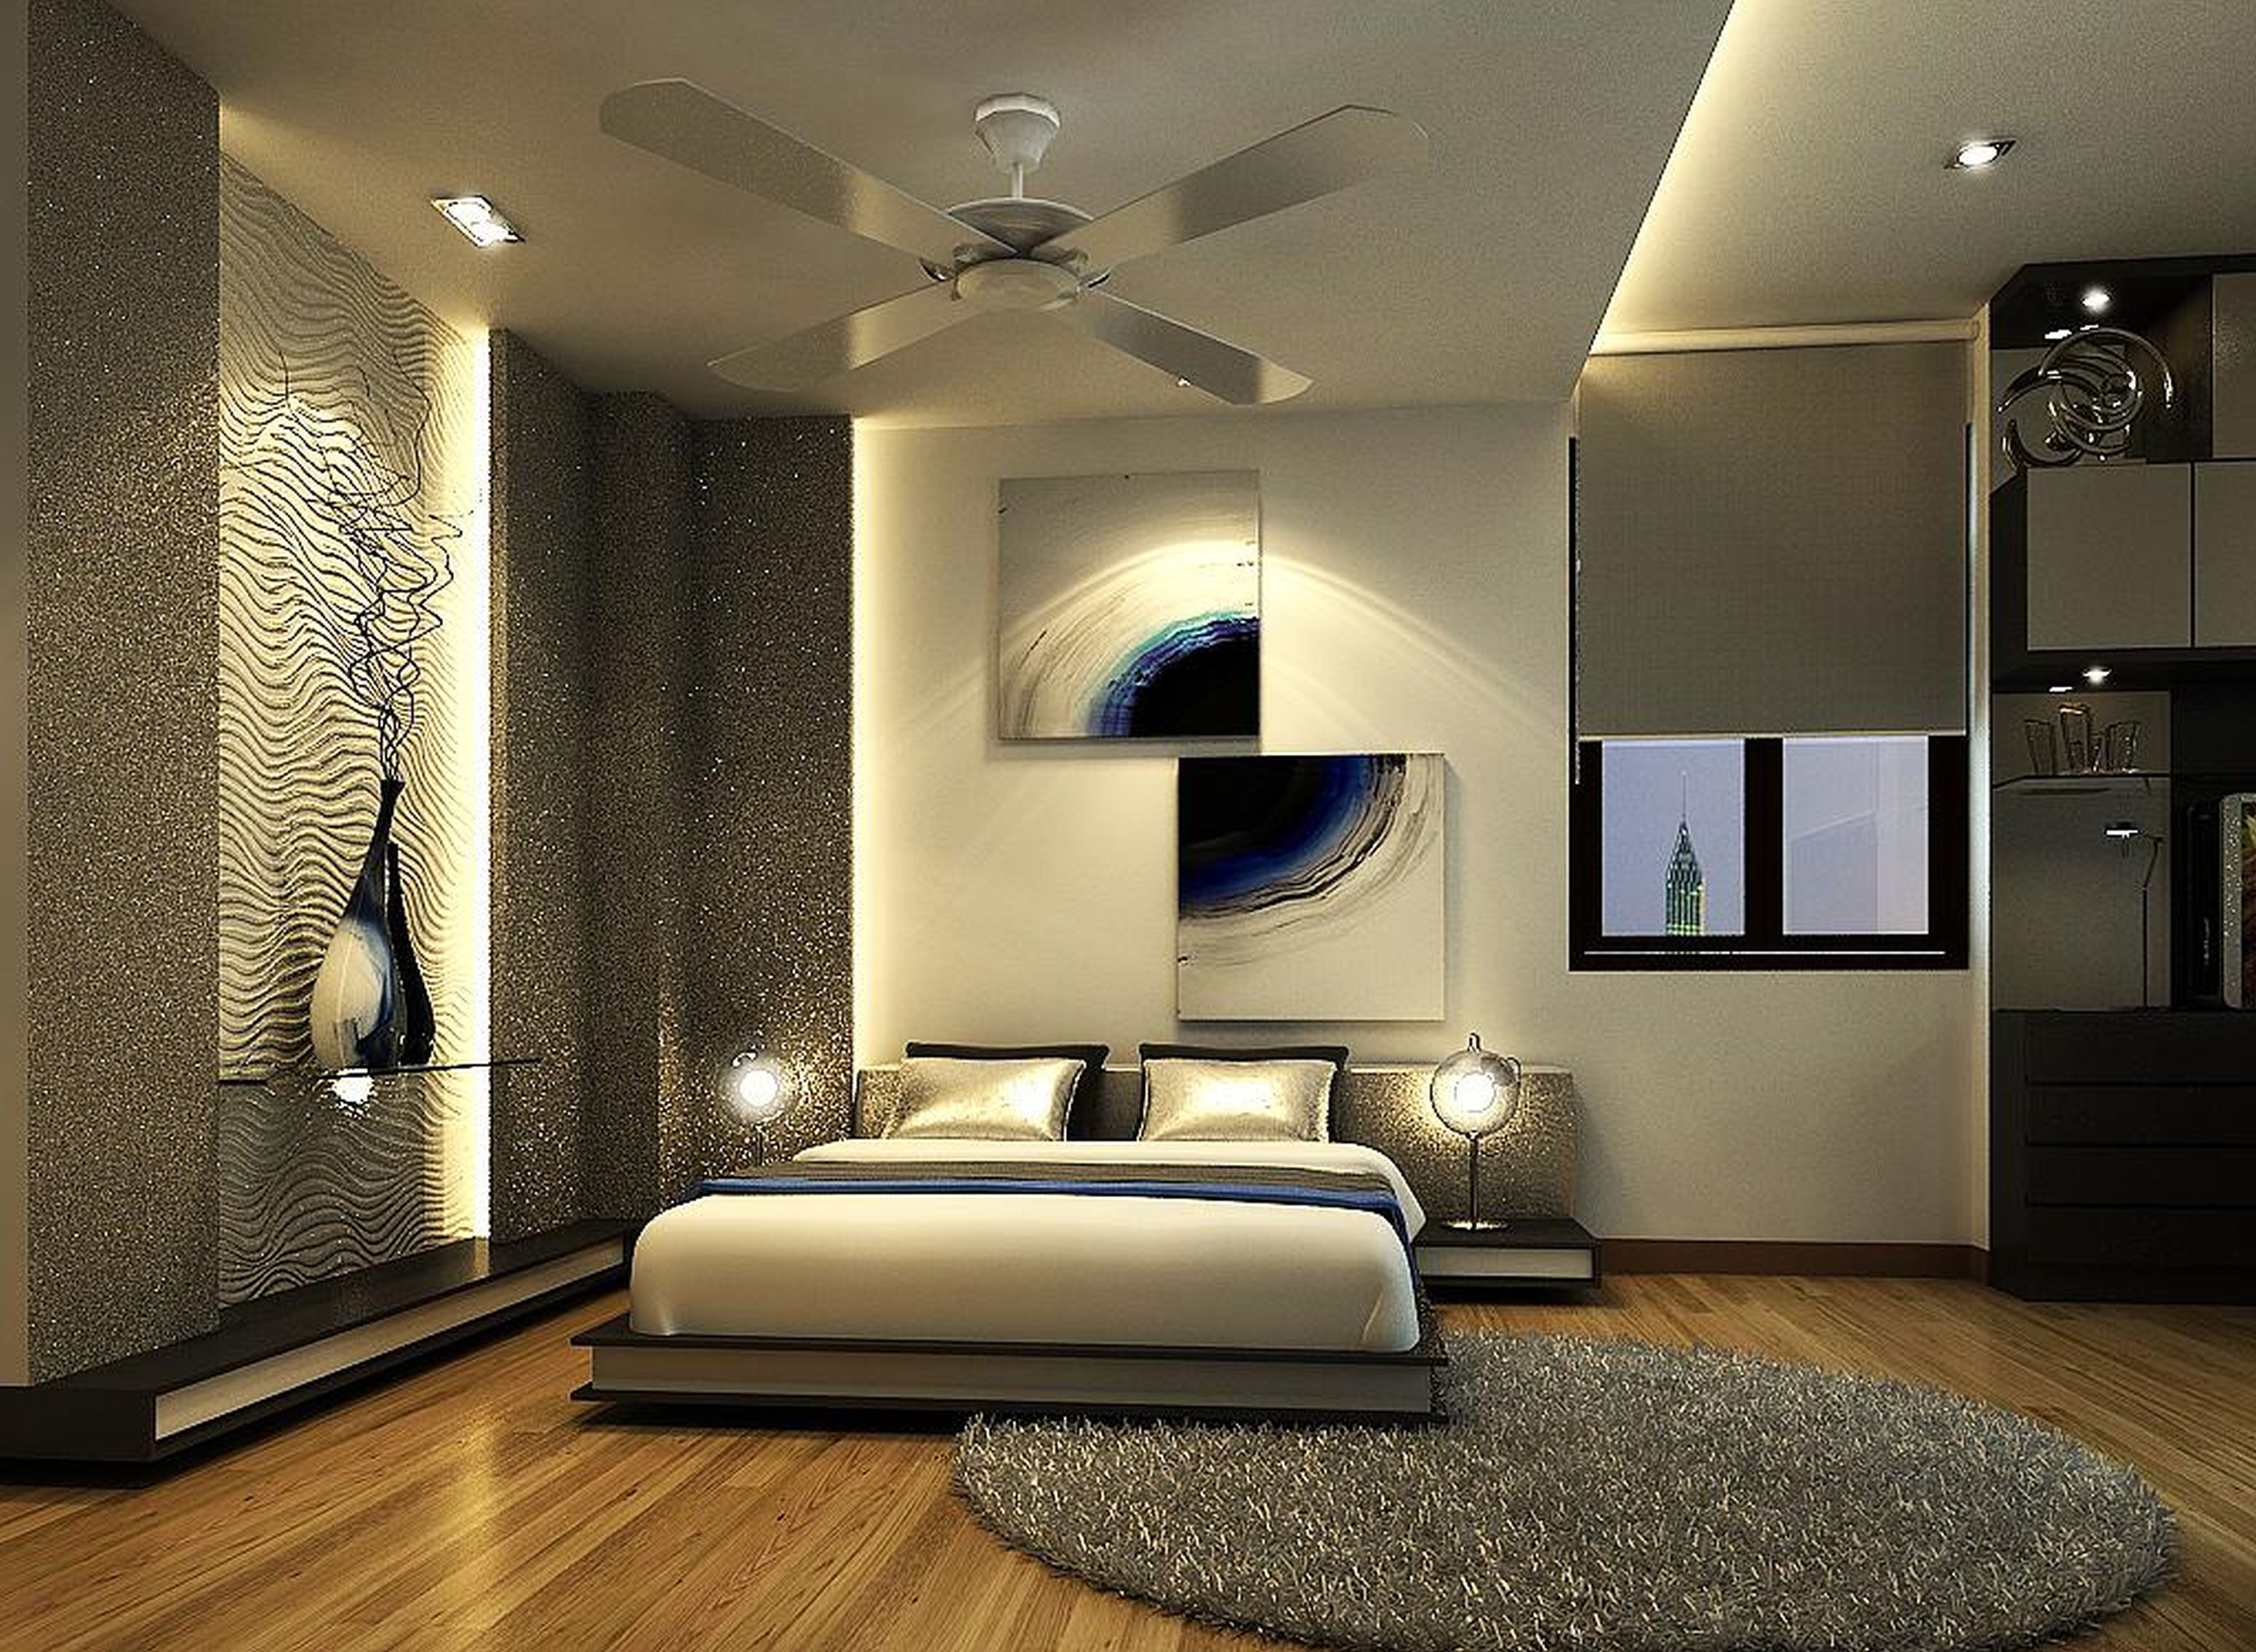 Bedroom Design Gallery For Inspiration - The WoW Style on Room Decore  id=71949